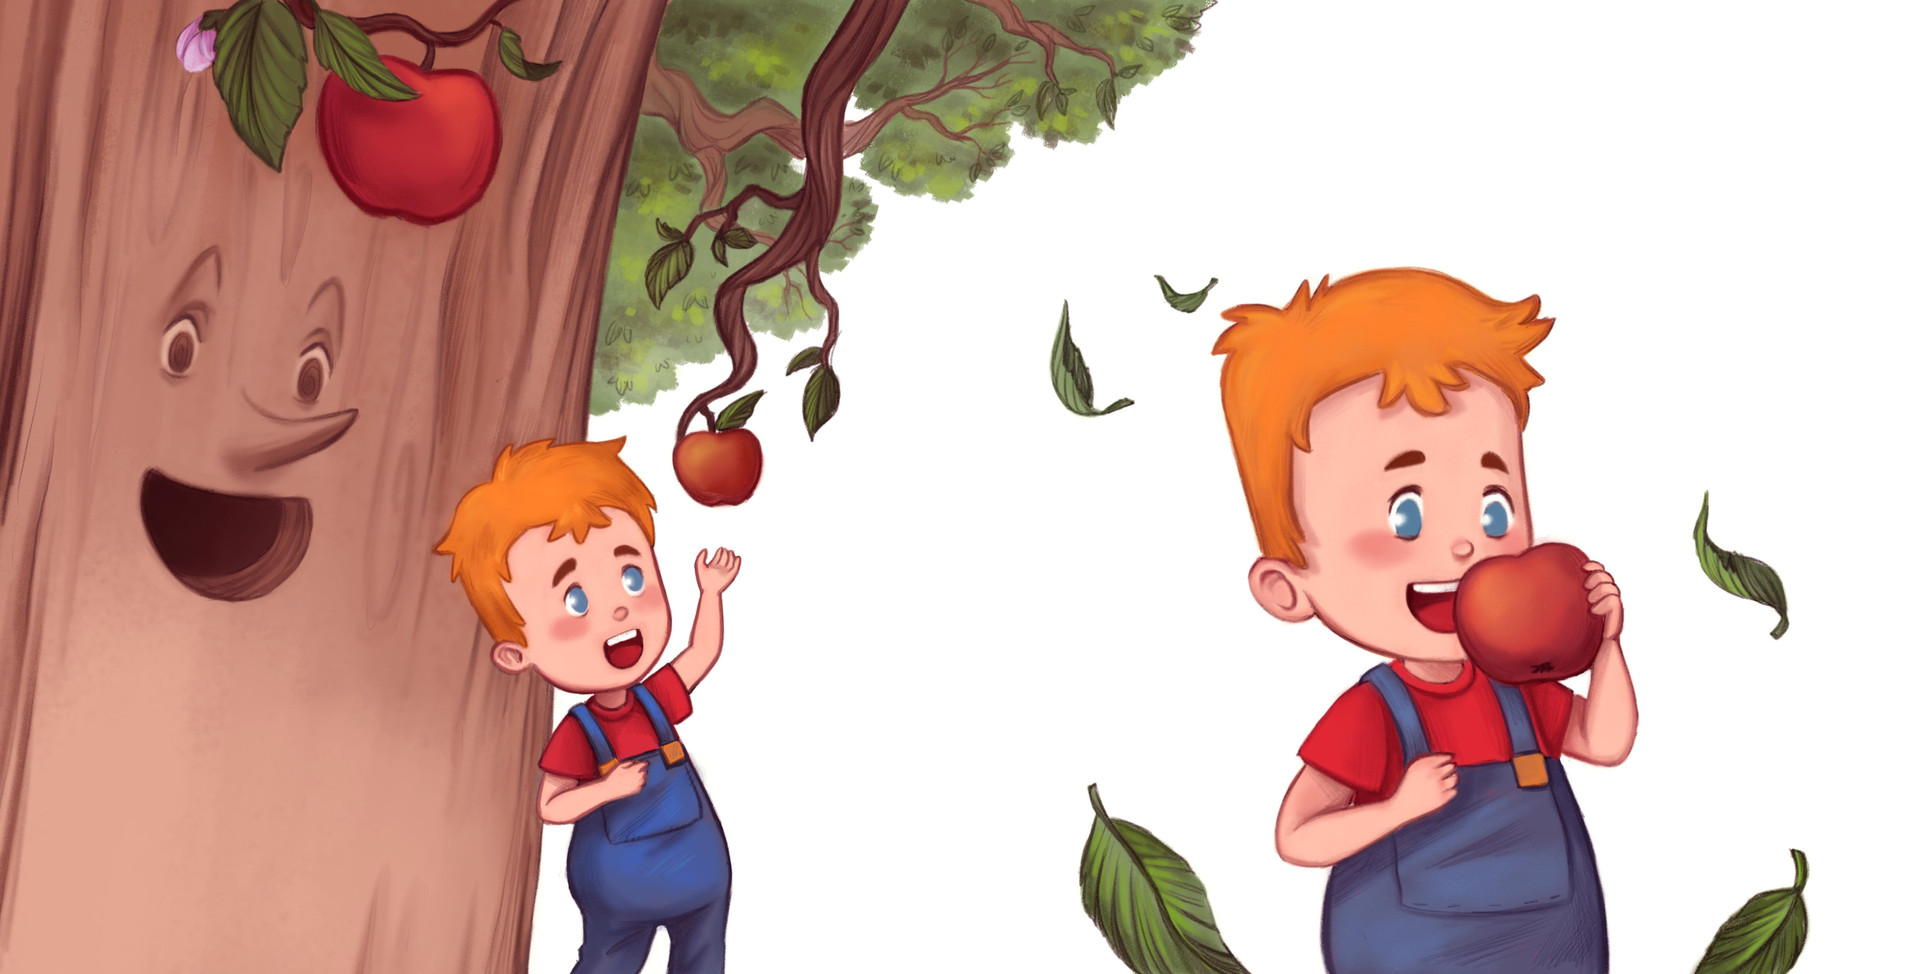 Tim and the Magical Apple Tree